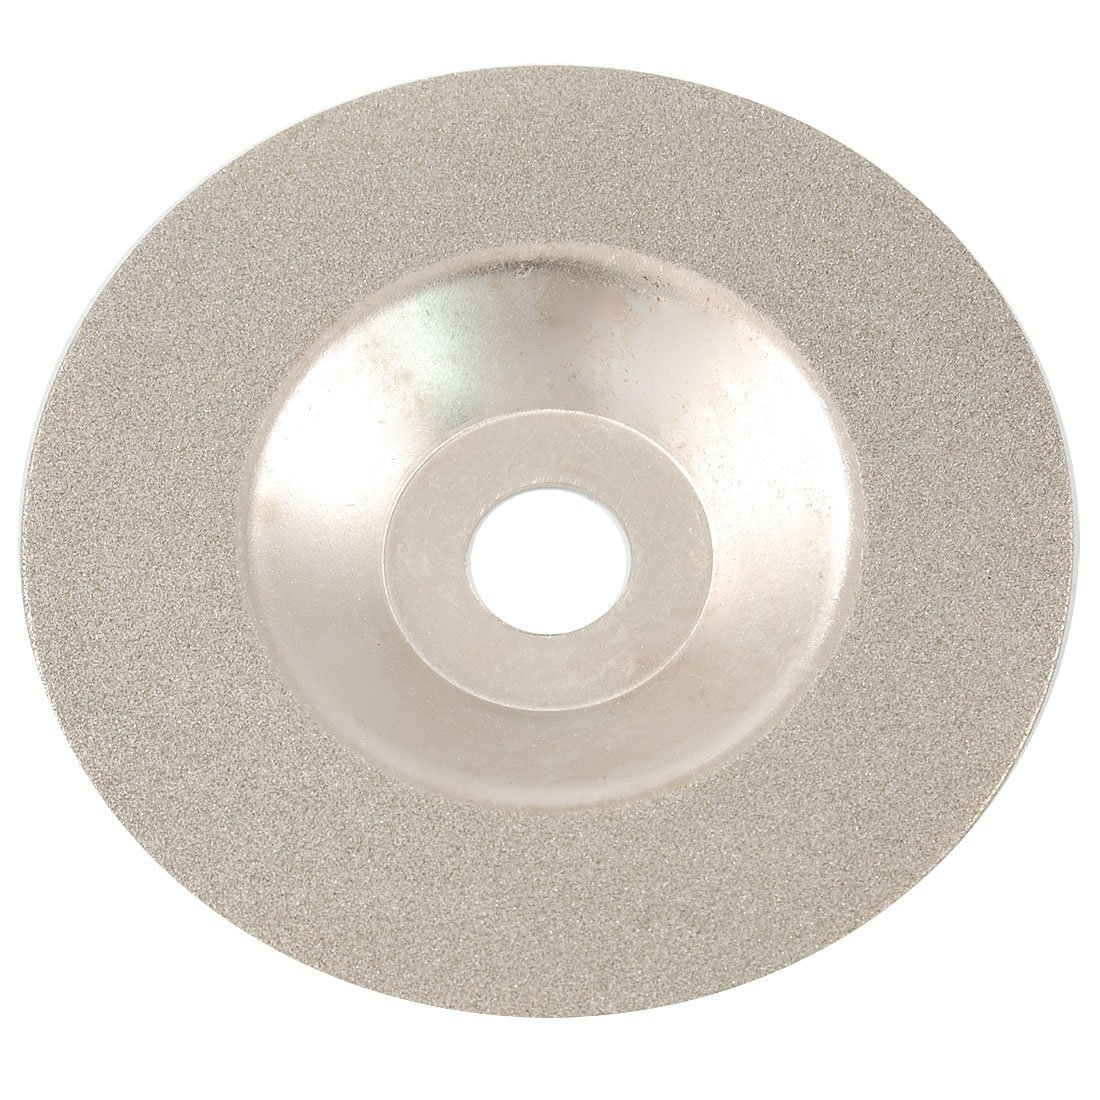 DealMux 100mm Diameter Fine Grits Electroplated Diamond Coated Glass Rock Cutting Disc